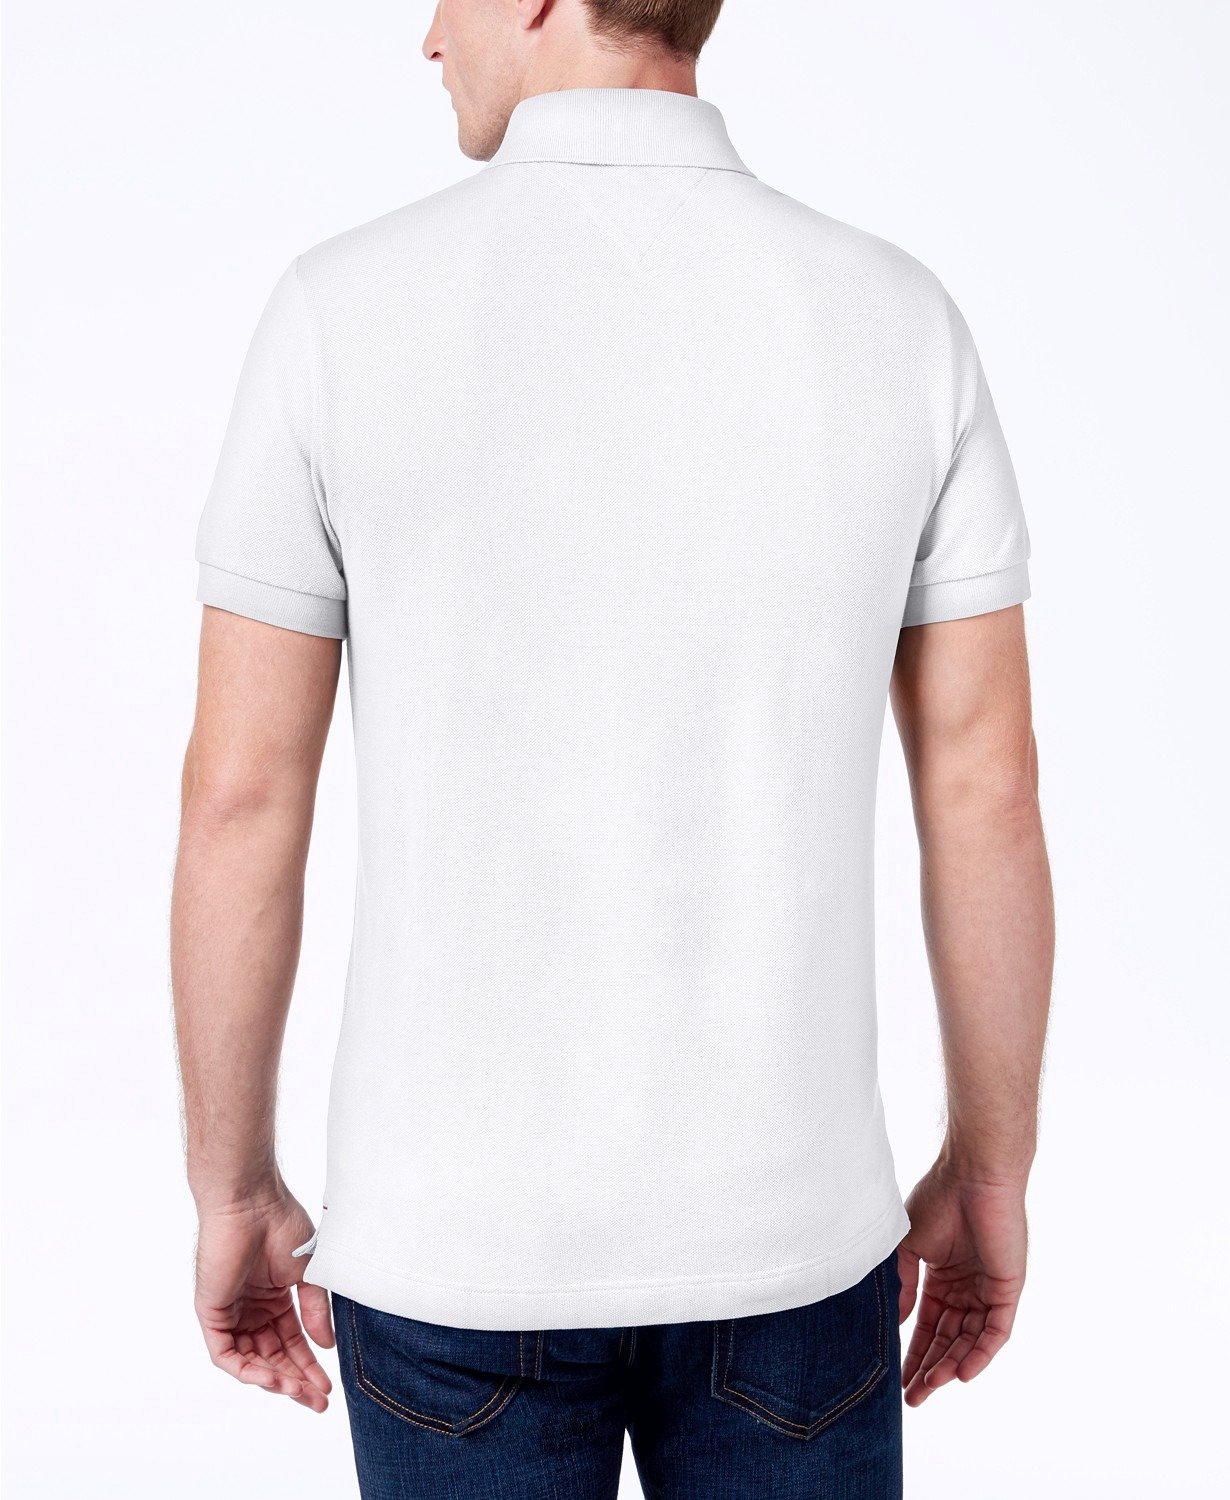 Tommy-Hilfiger-NEW-Custom-Fit-Men-039-s-Solid-Short-Sleeve-Pique-Polo-Shirt thumbnail 15